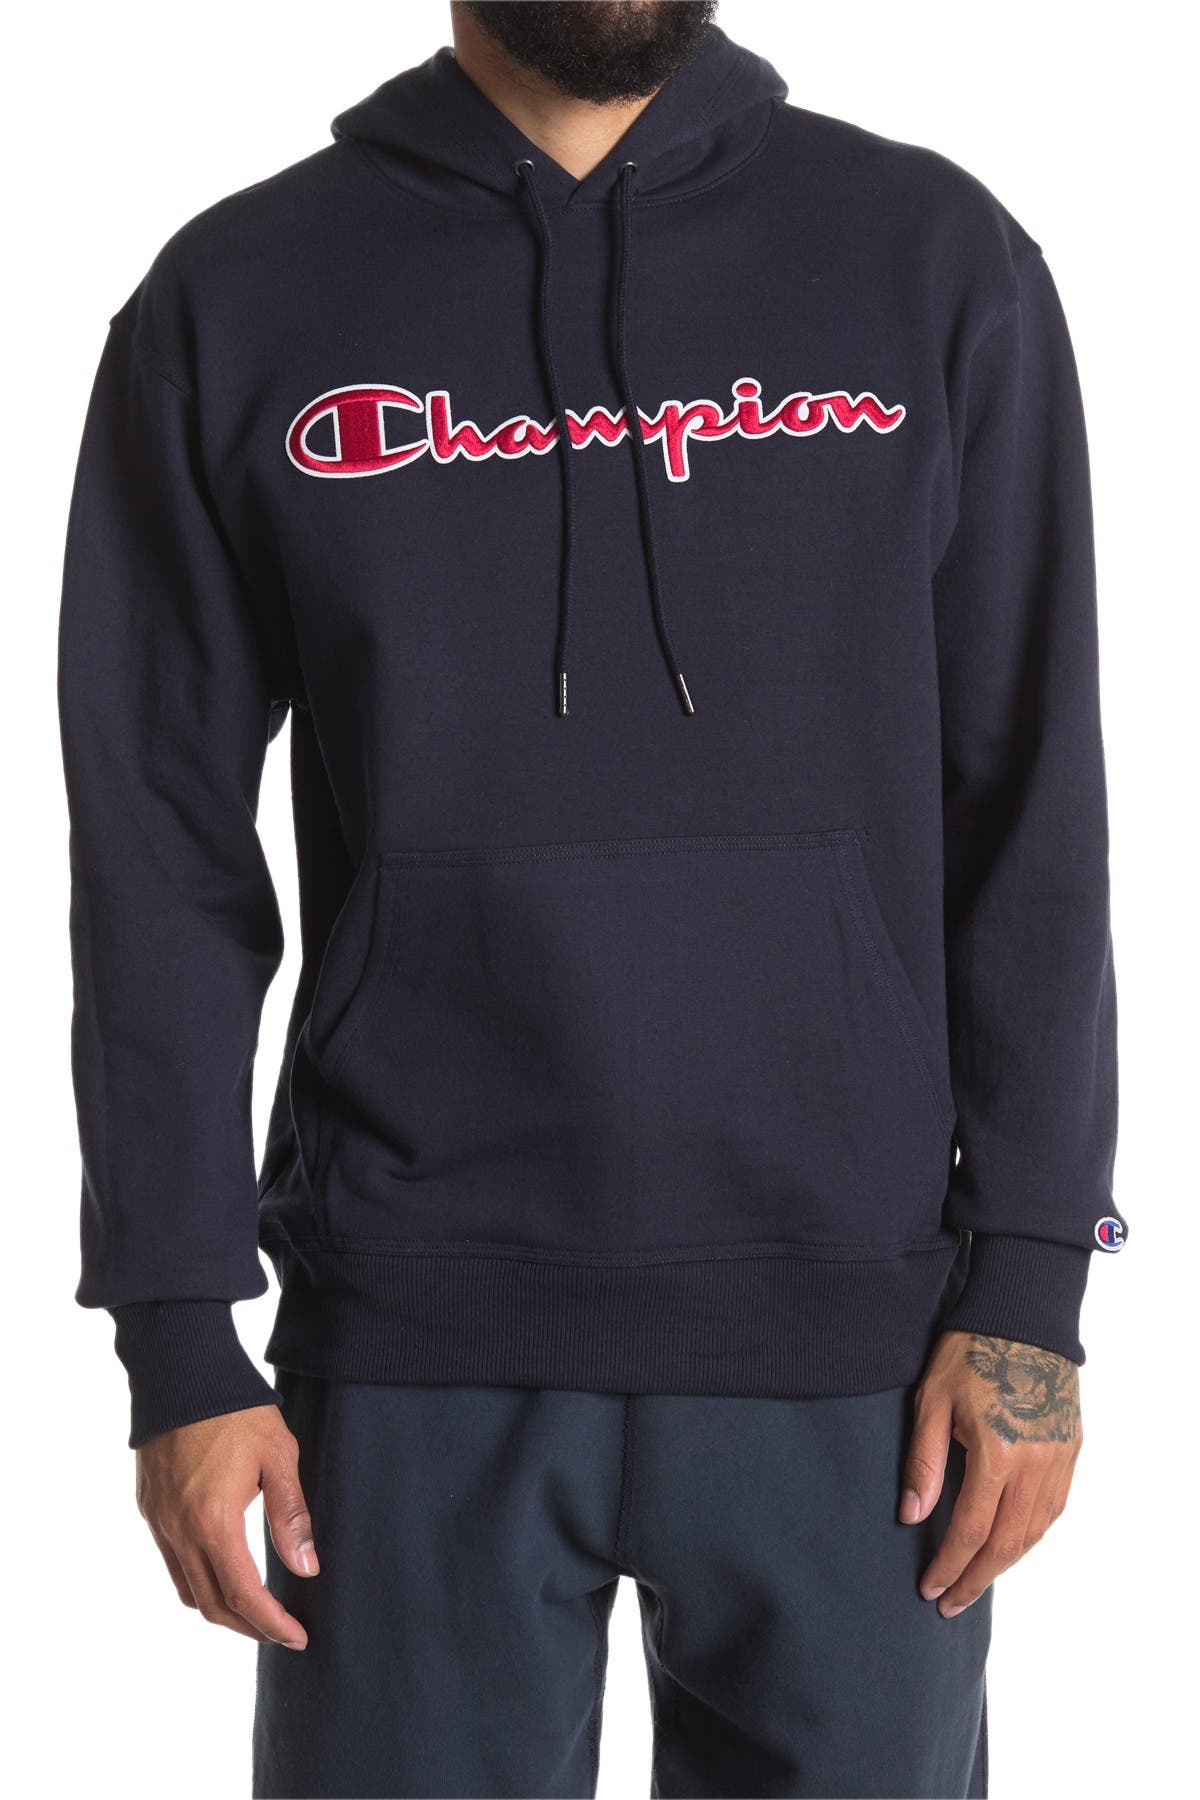 Image of Champion Powerblend Applique Pullover Hoodie